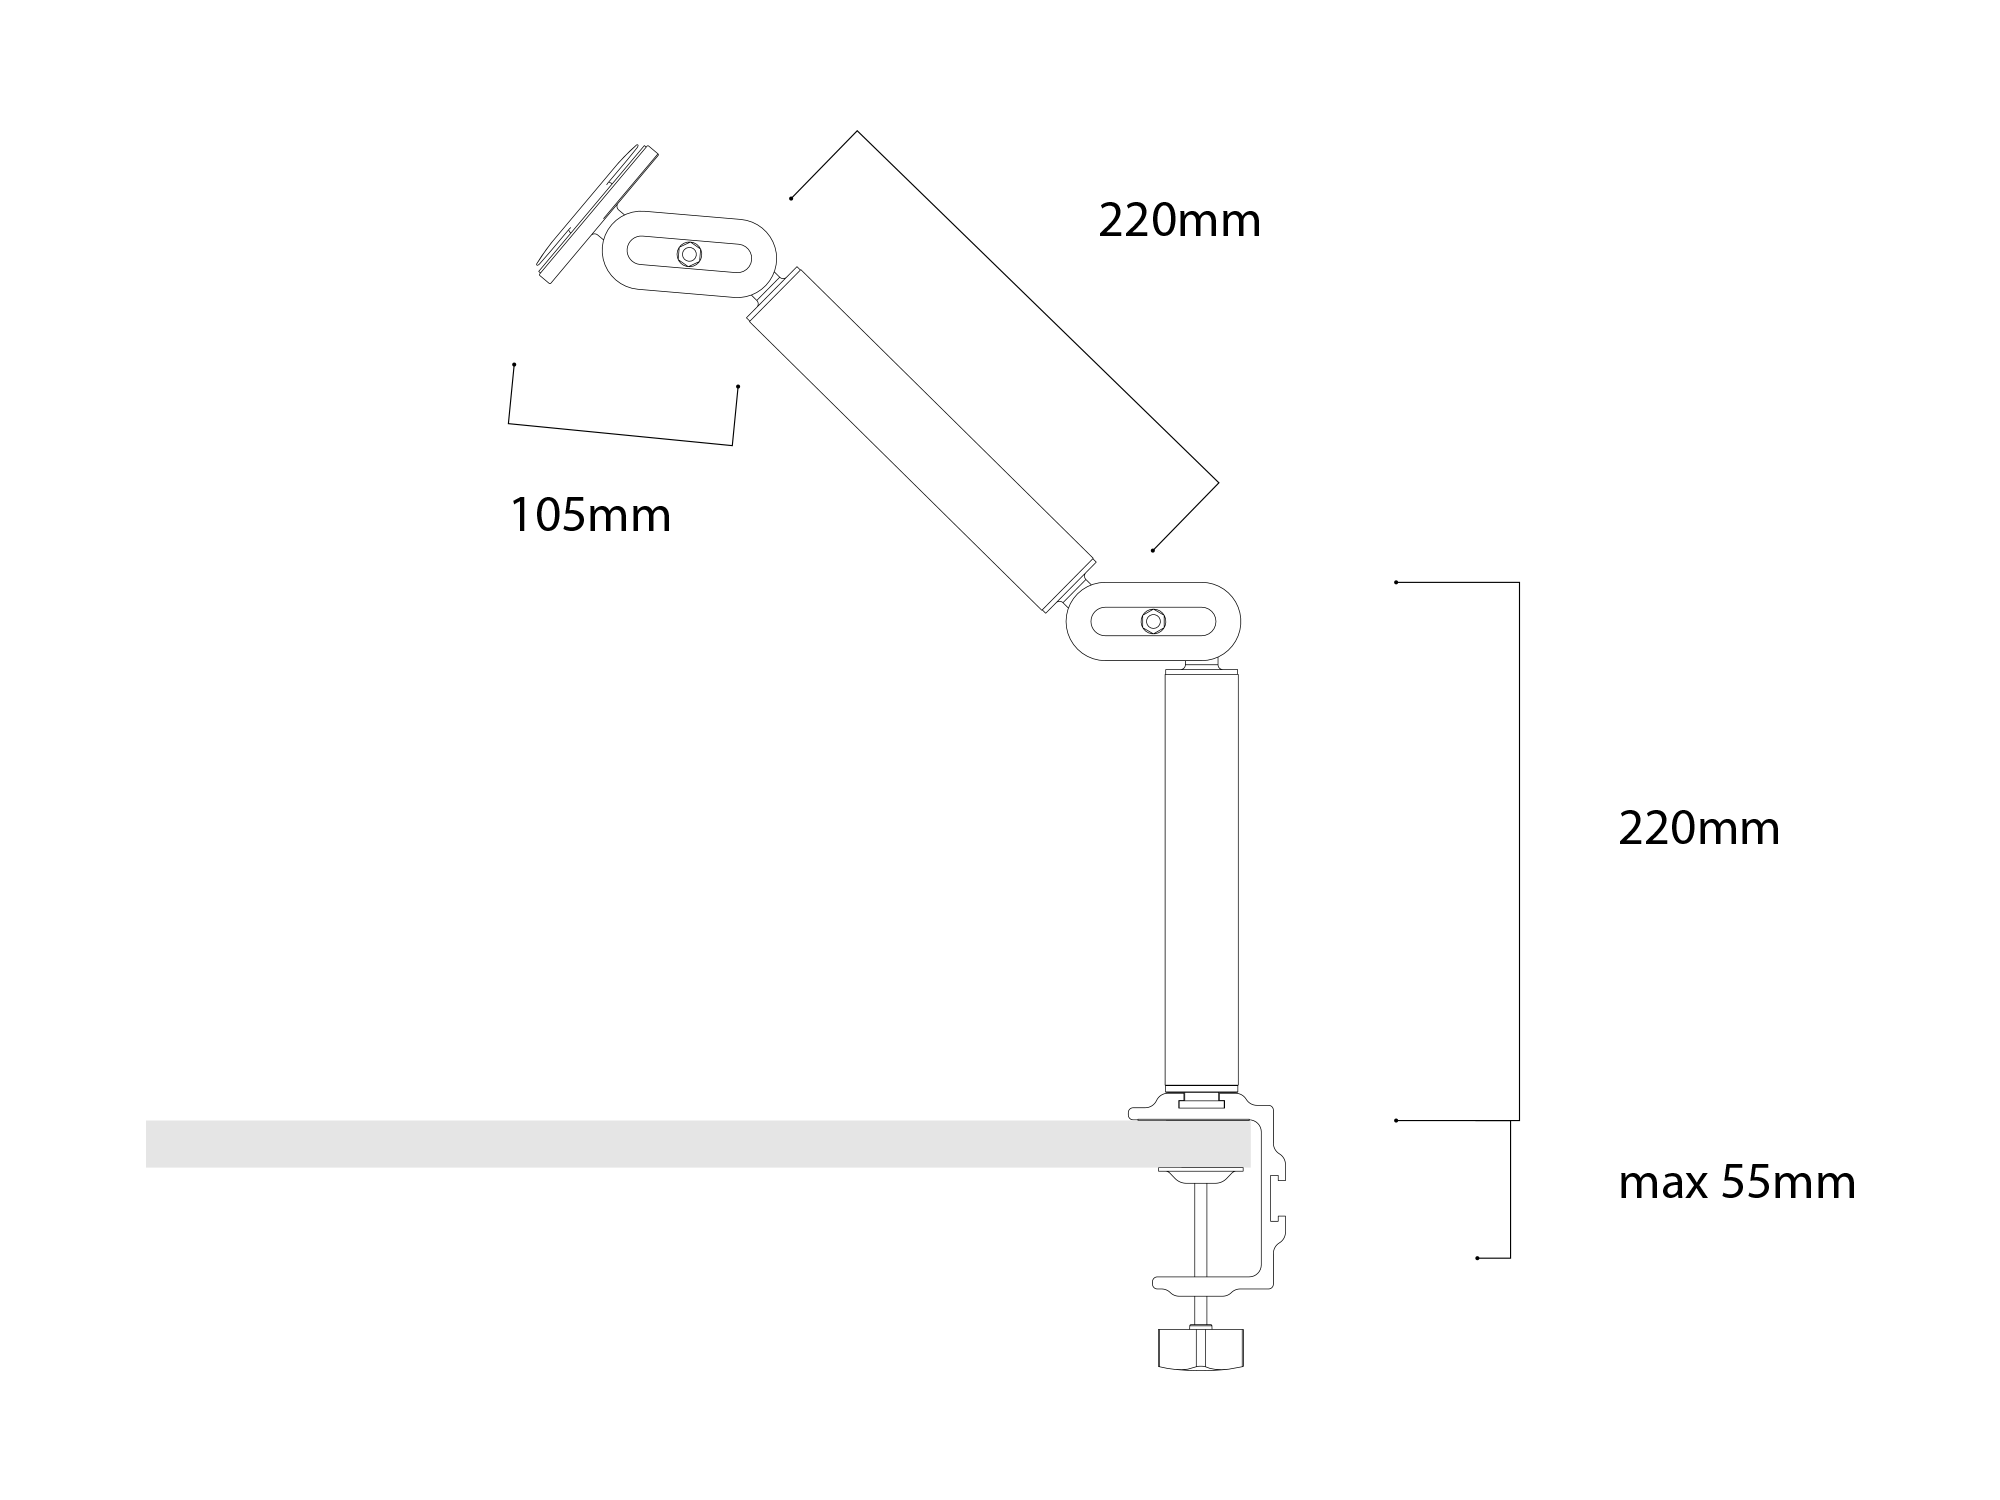 Connect Arm Dimensions Table